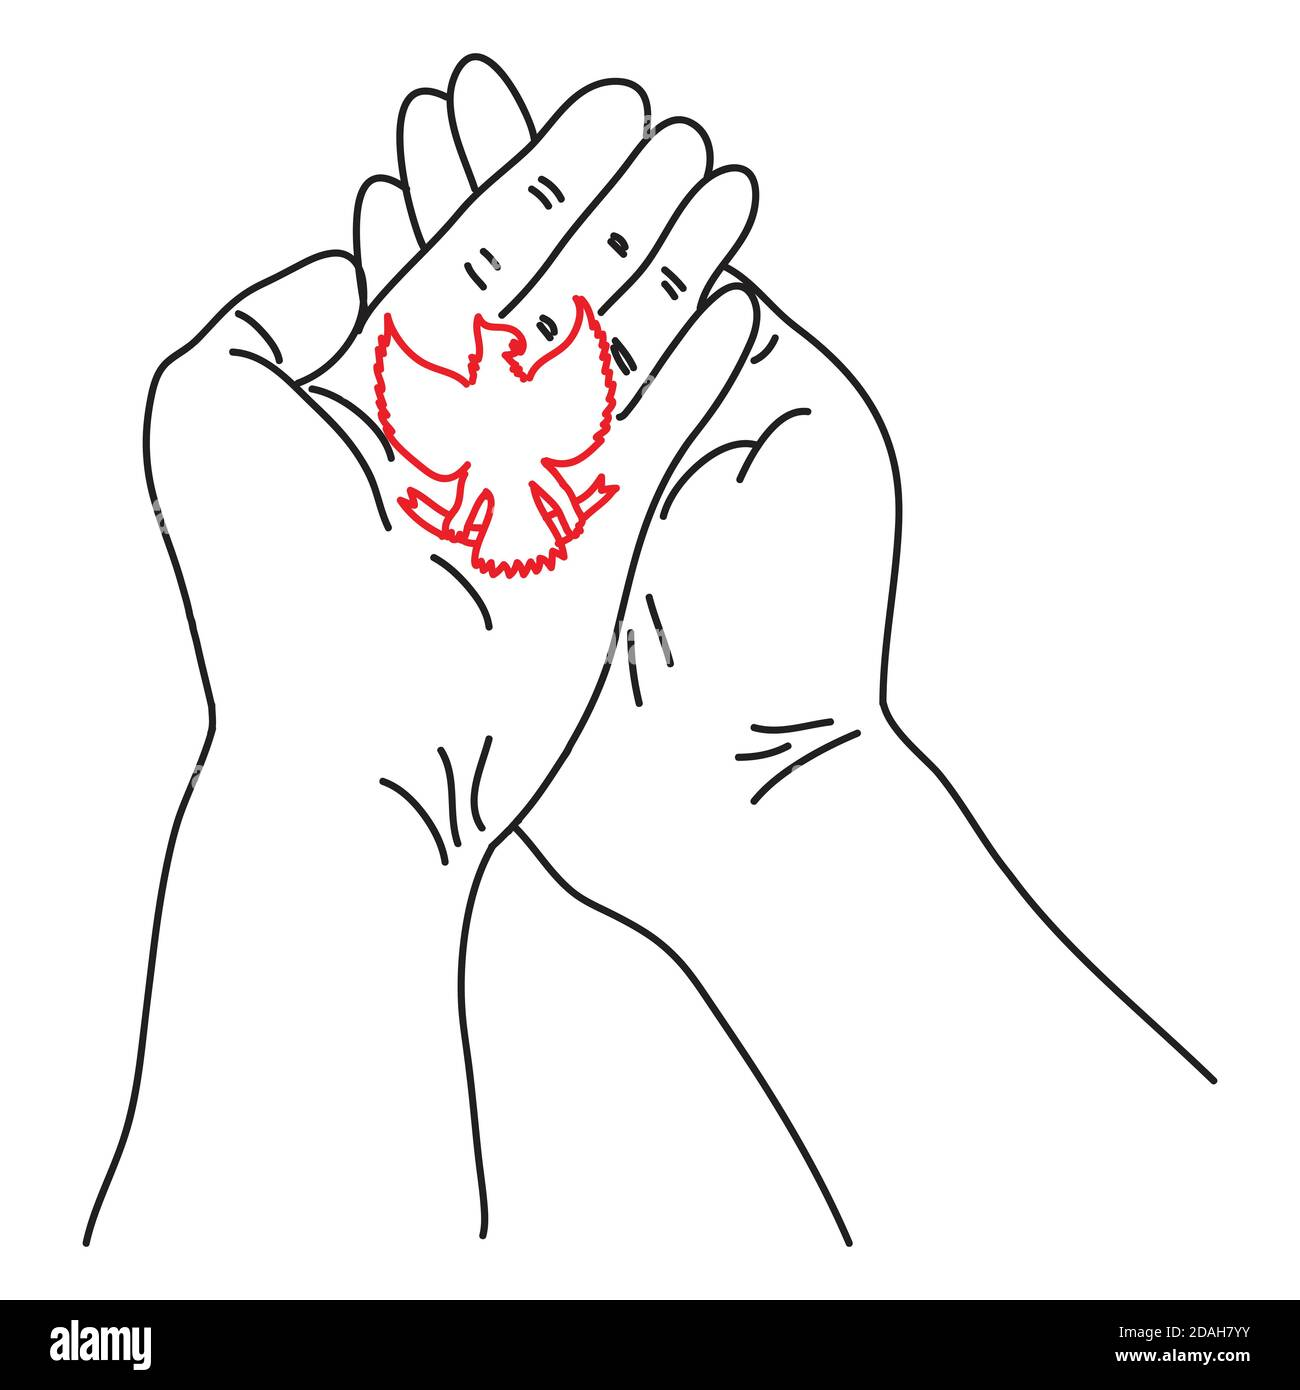 Hand drawn of a hand holds Garuda Bird. Garuda is the symbol of the state of Indonesia Stock Vector